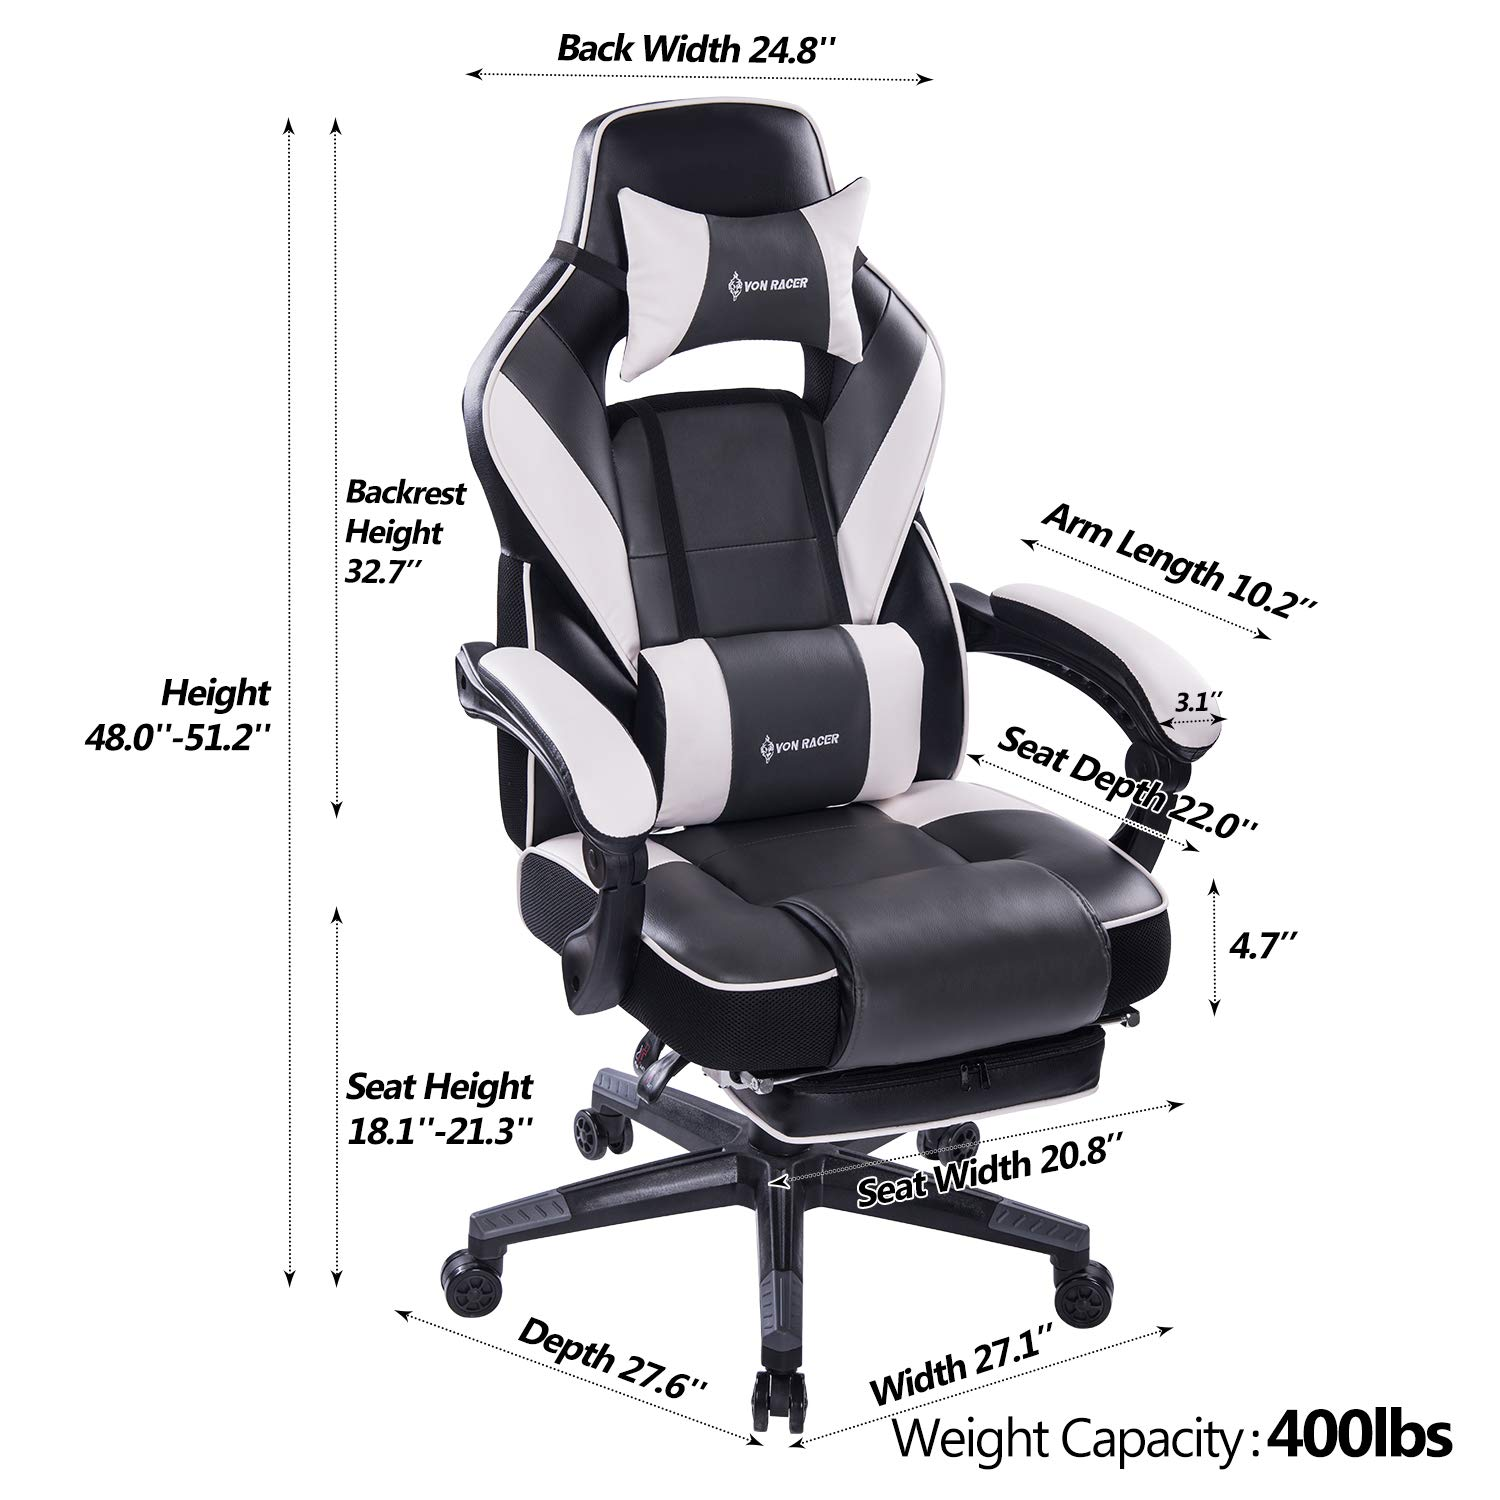 VON RACER Massage Reclining Gaming Chair - Ergonomic High-Back Racing Computer Desk Office Chair with Retractable Footrest and Adjustable Lumbar Cushion (Gray) by VON RACER (Image #6)